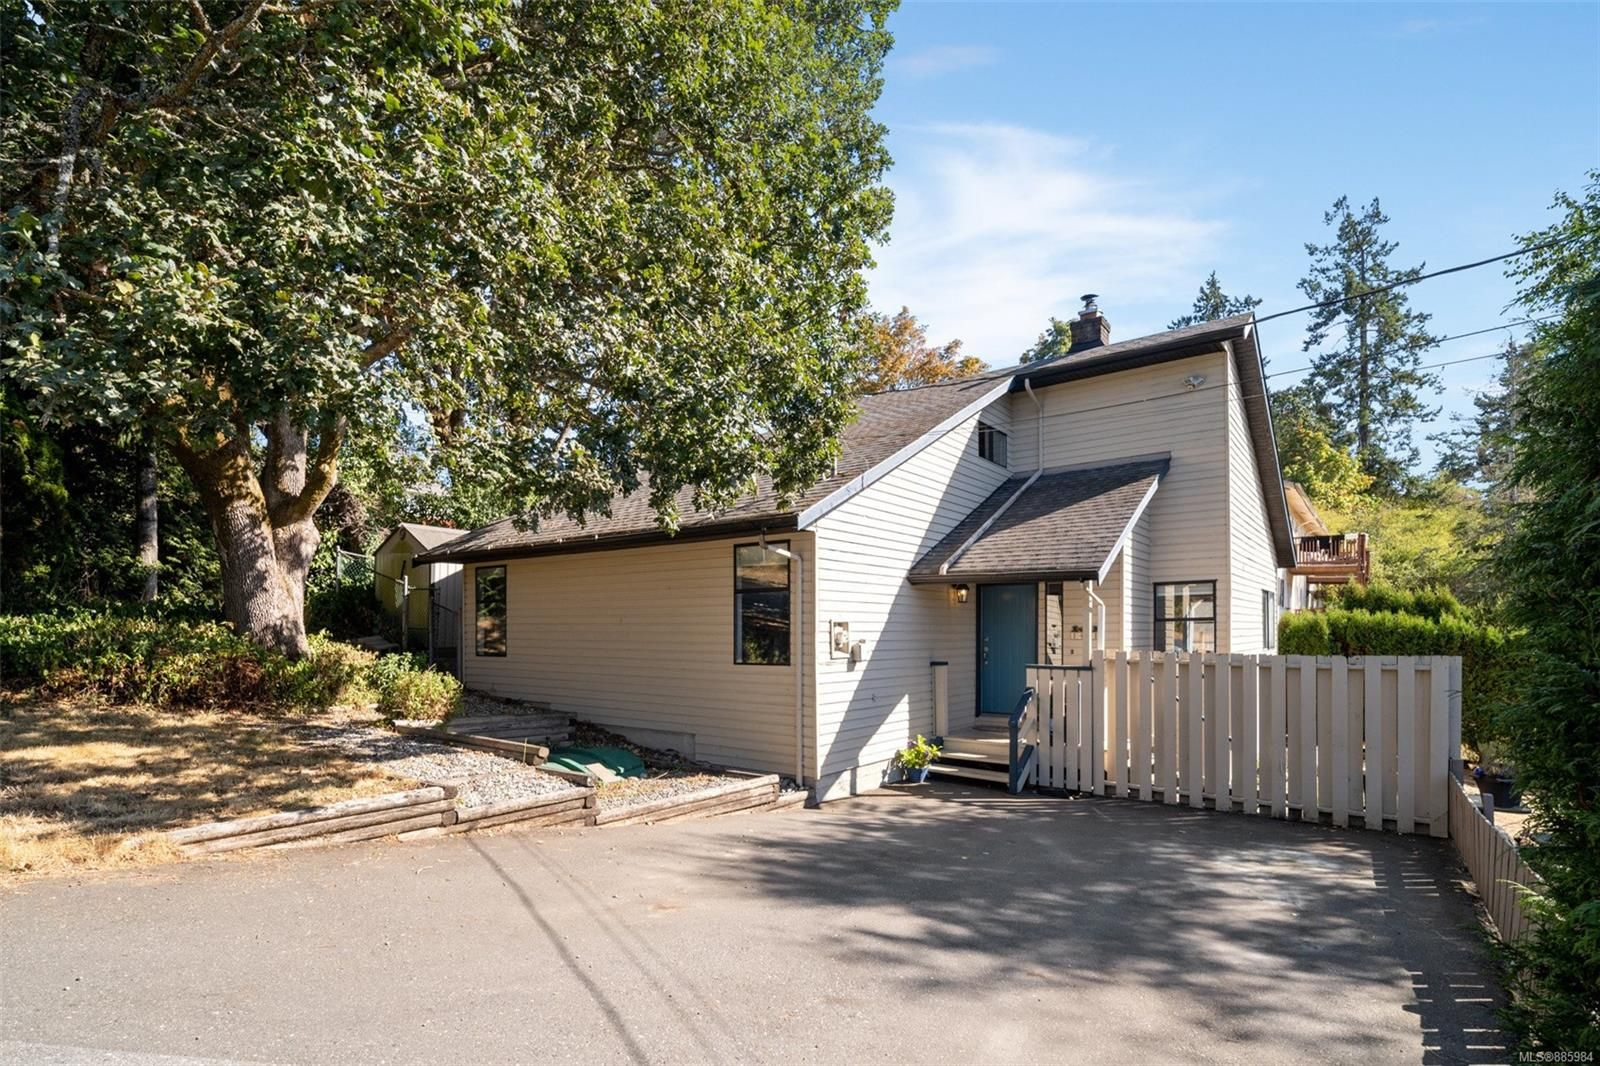 Main Photo: 1401 Hastings St in : SW Strawberry Vale House for sale (Saanich West)  : MLS®# 885984